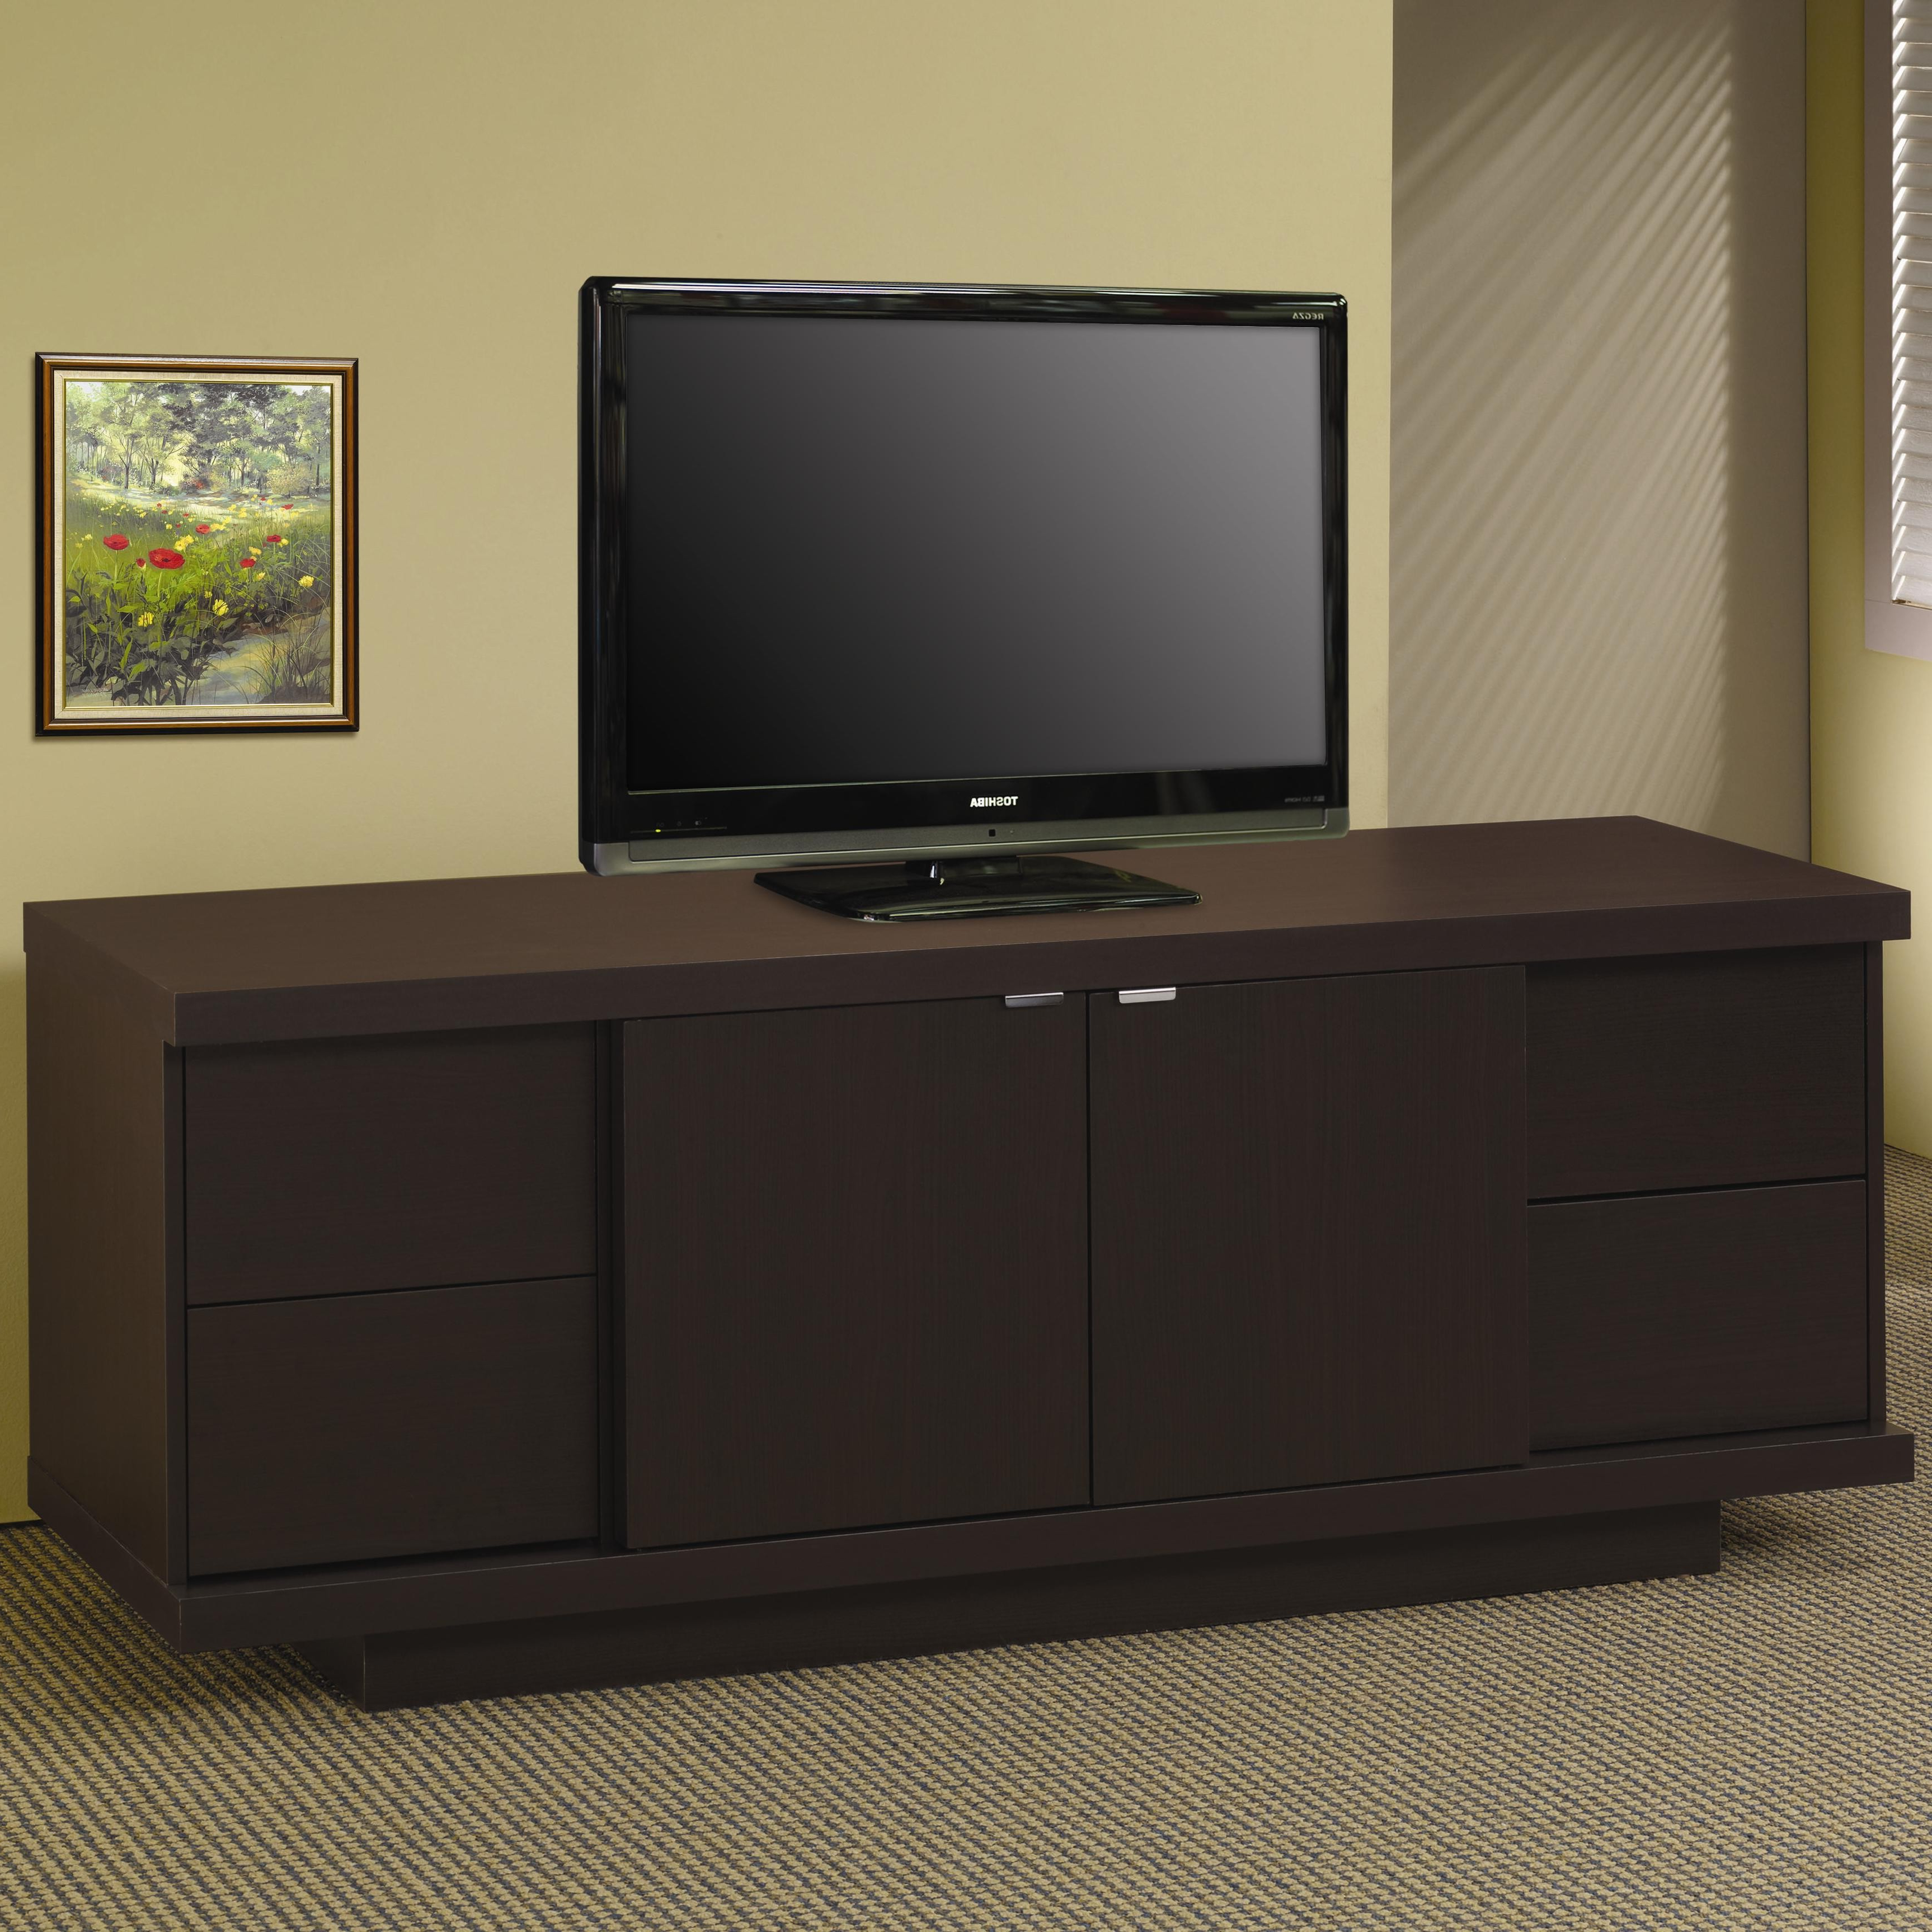 Latest Tv Stands With Drawers And Shelves Regarding Tv Stands Contemporary Media Console With Drawers And Shelves Lowest (View 20 of 20)